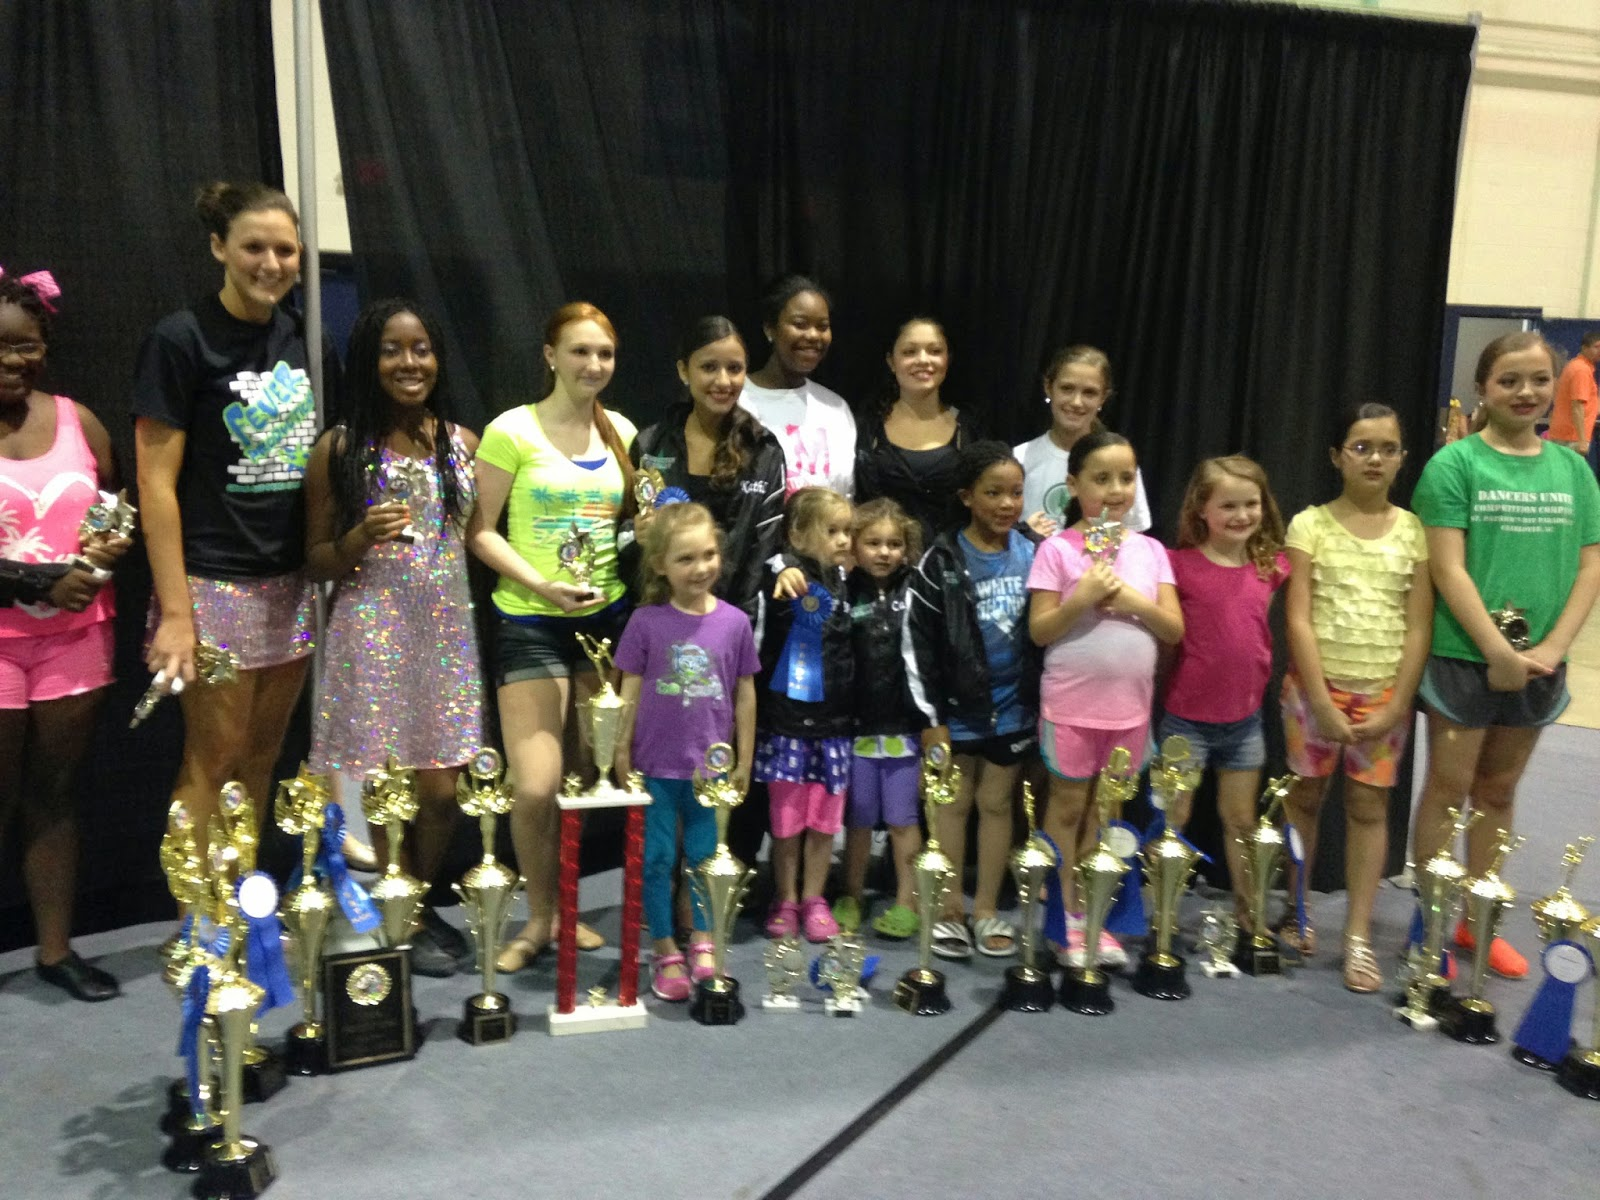 fort mill competition dance school wins